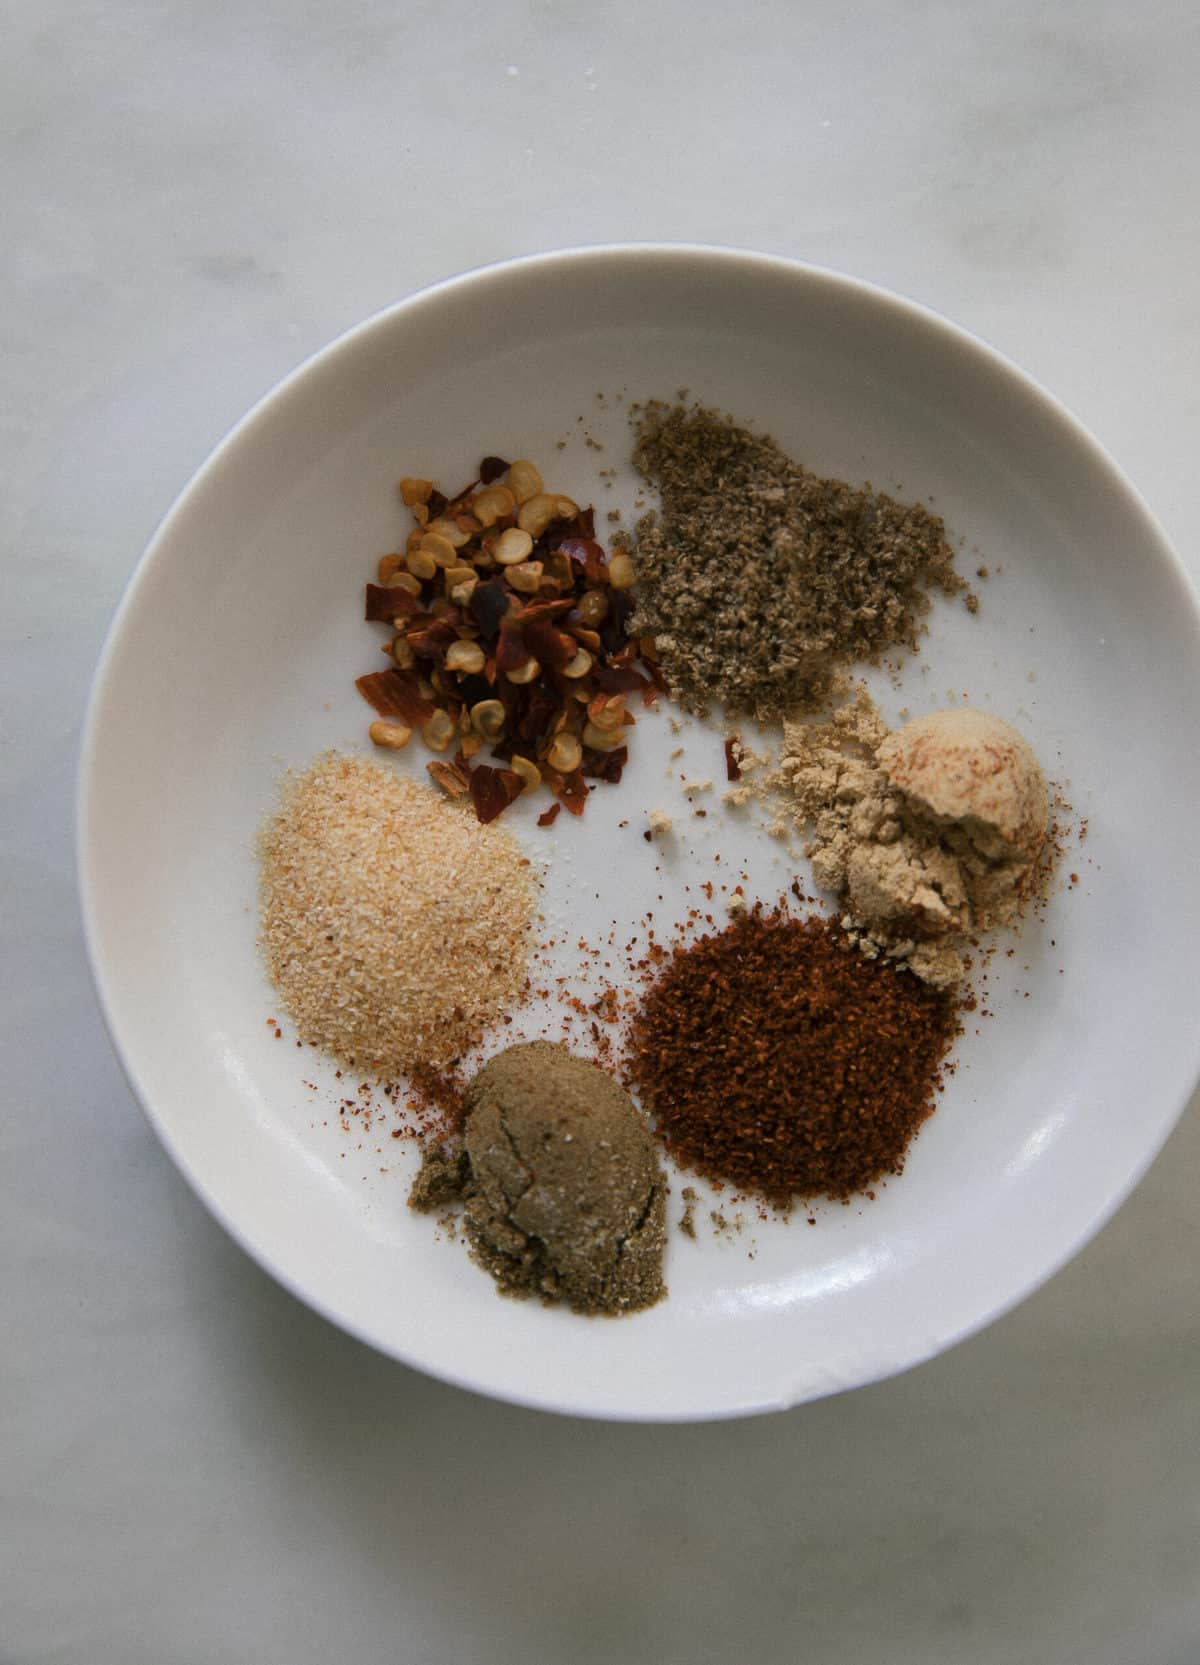 small plate with a variety of spices